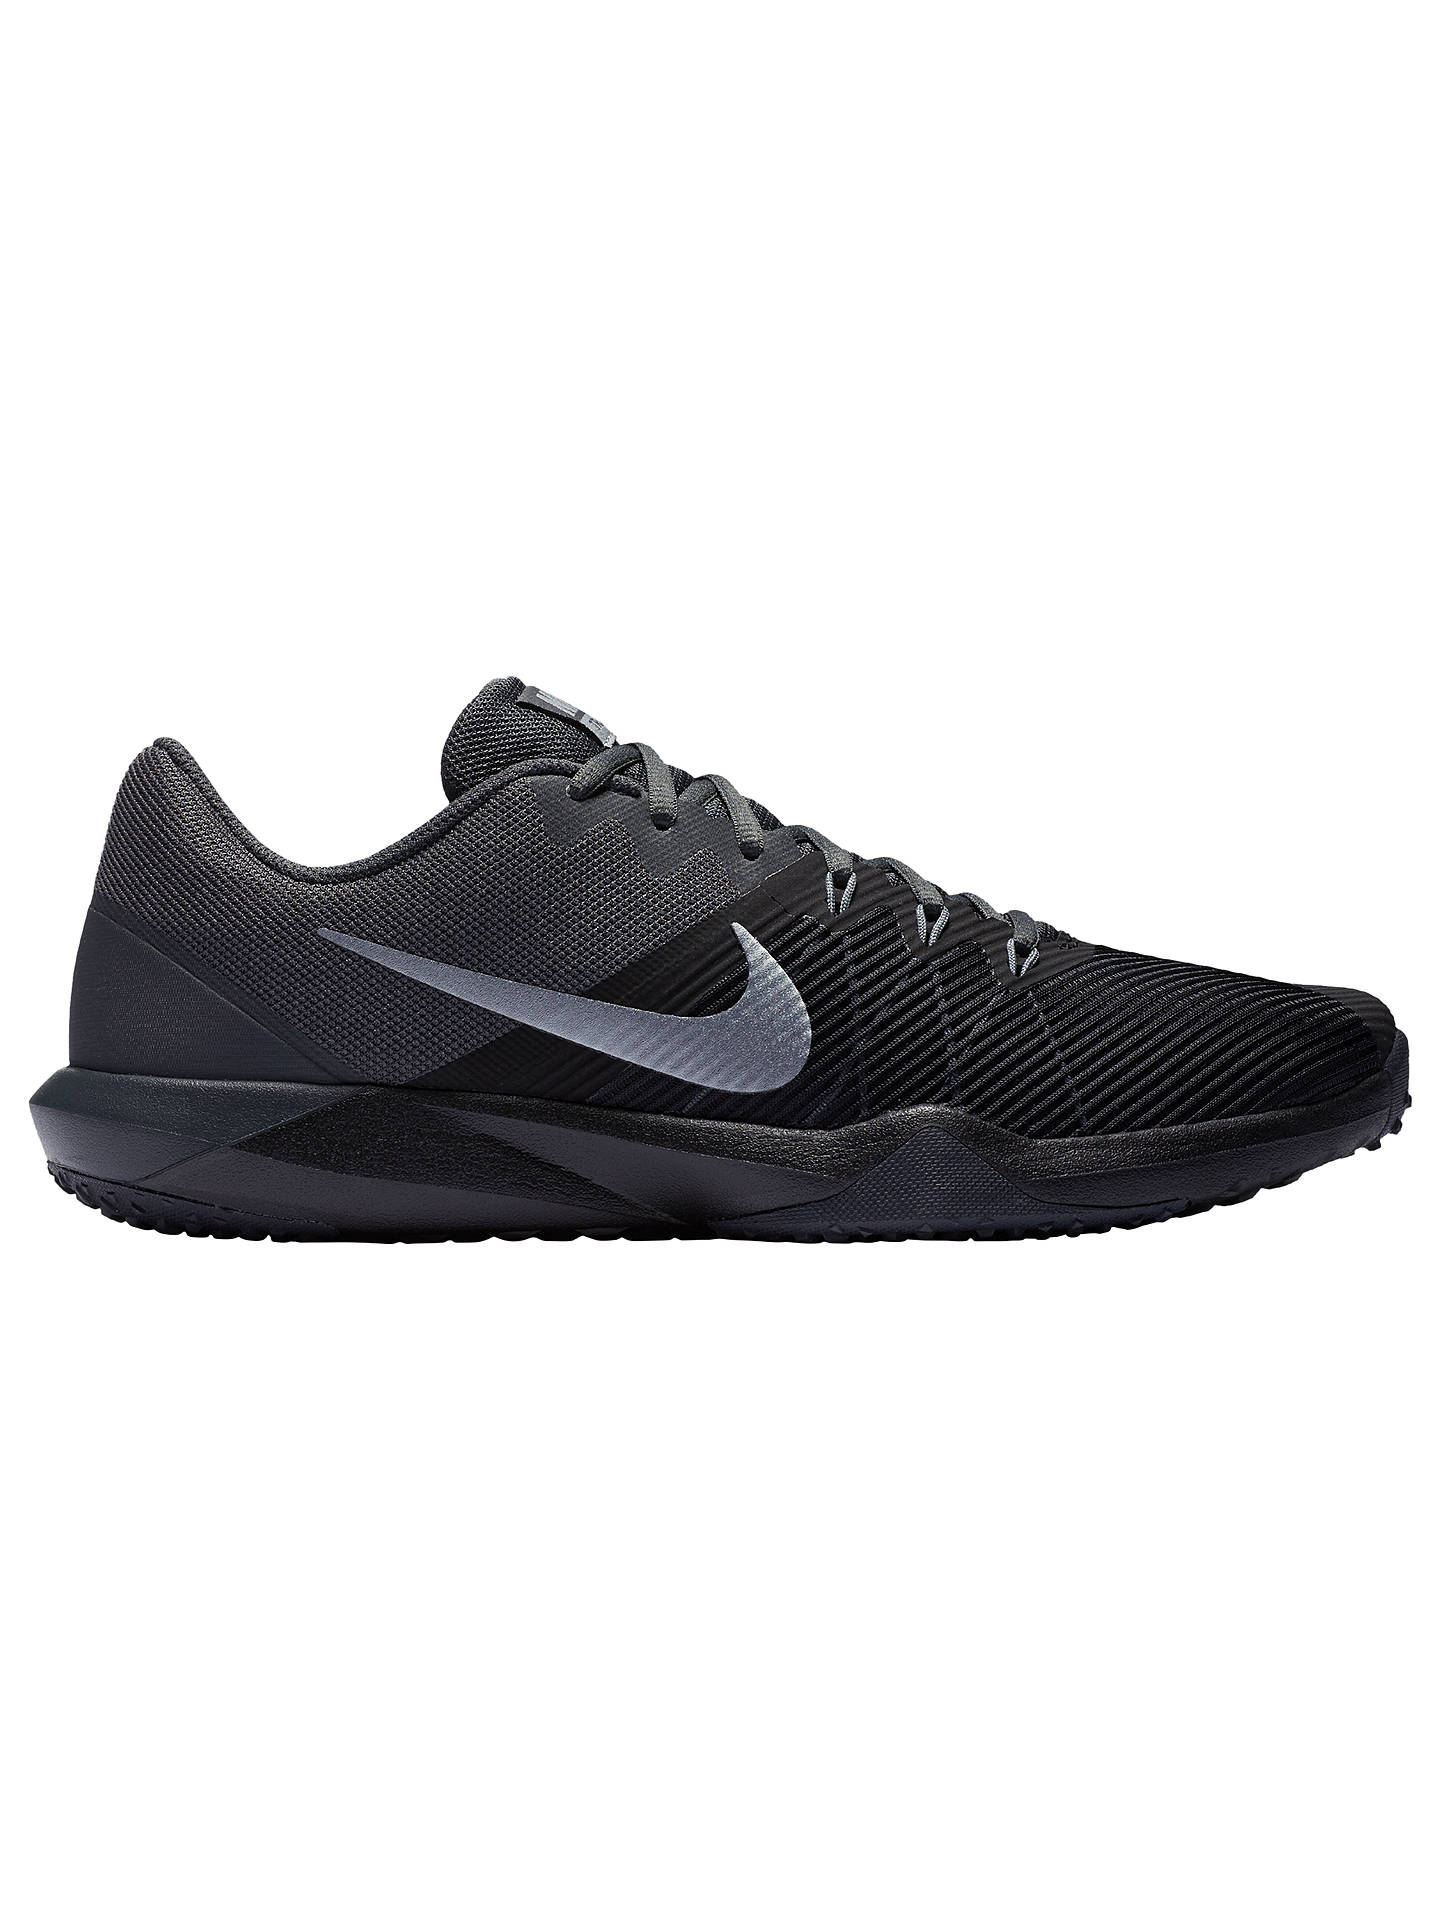 1e49d17dd2c3 Buy Nike Retaliation TR Men s Training Shoes